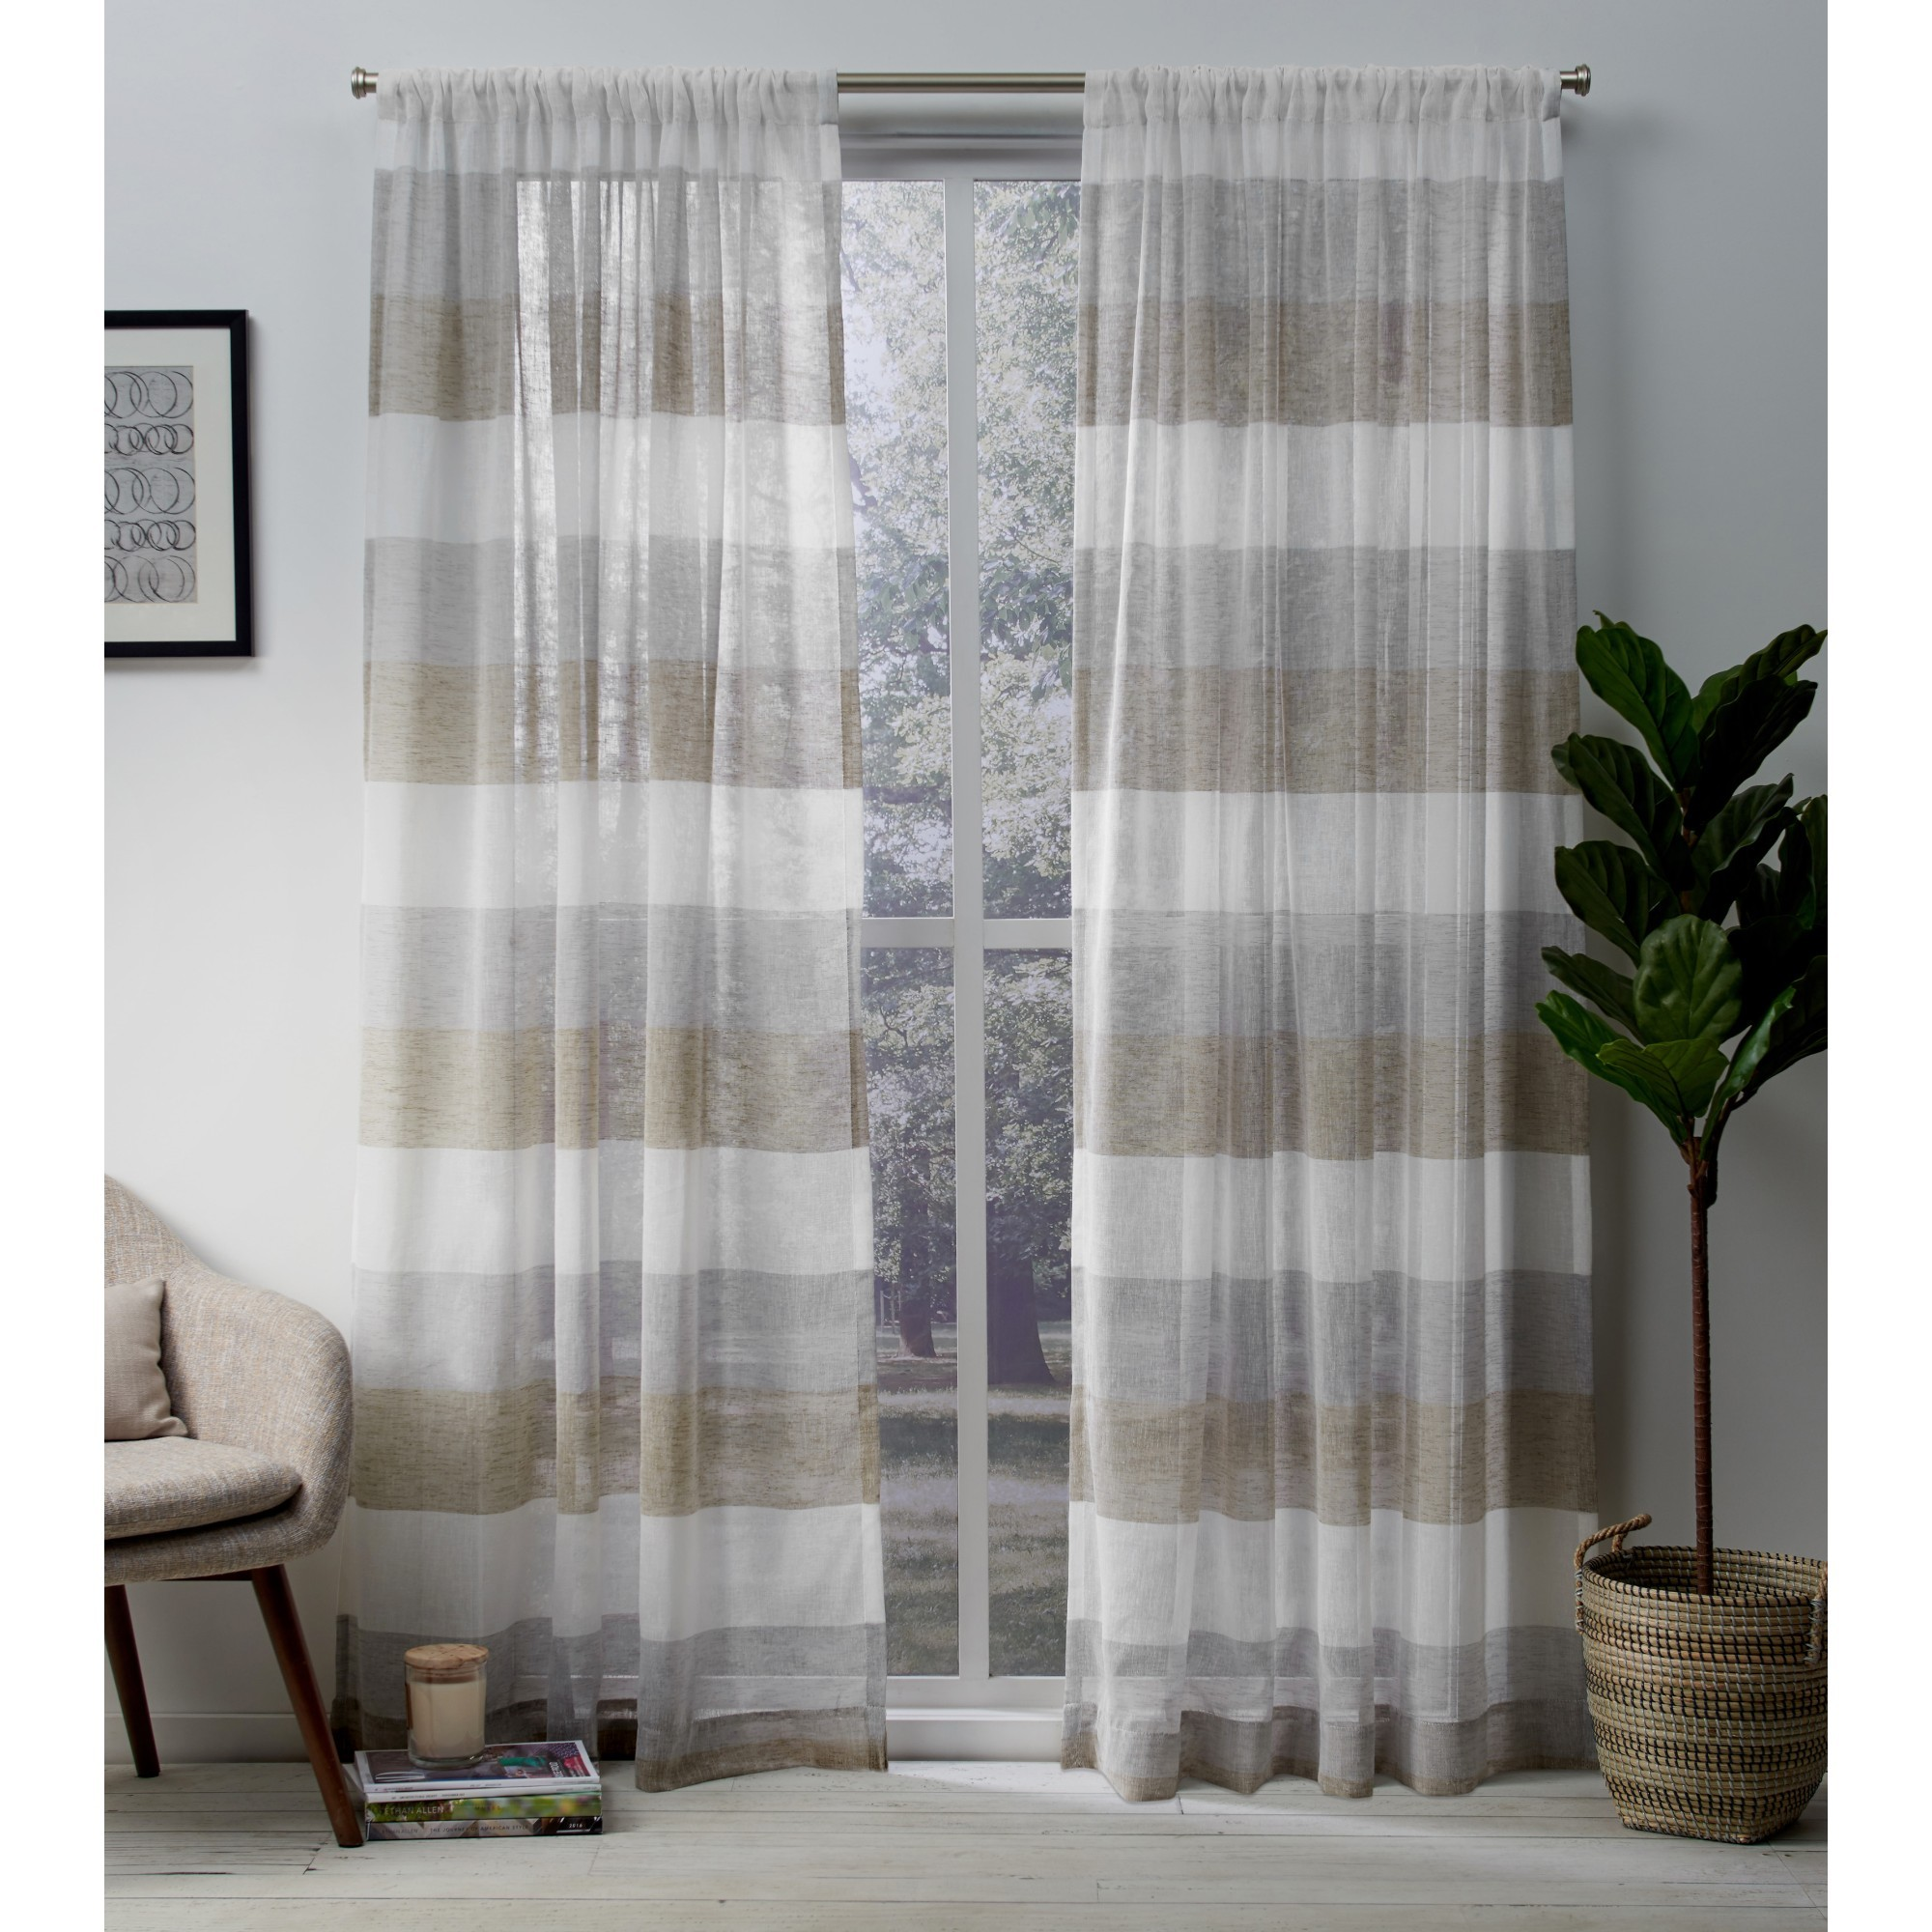 Exclusive Home Bern Stripe Sheer Window Curtain Panel Pair with Rod Pocket